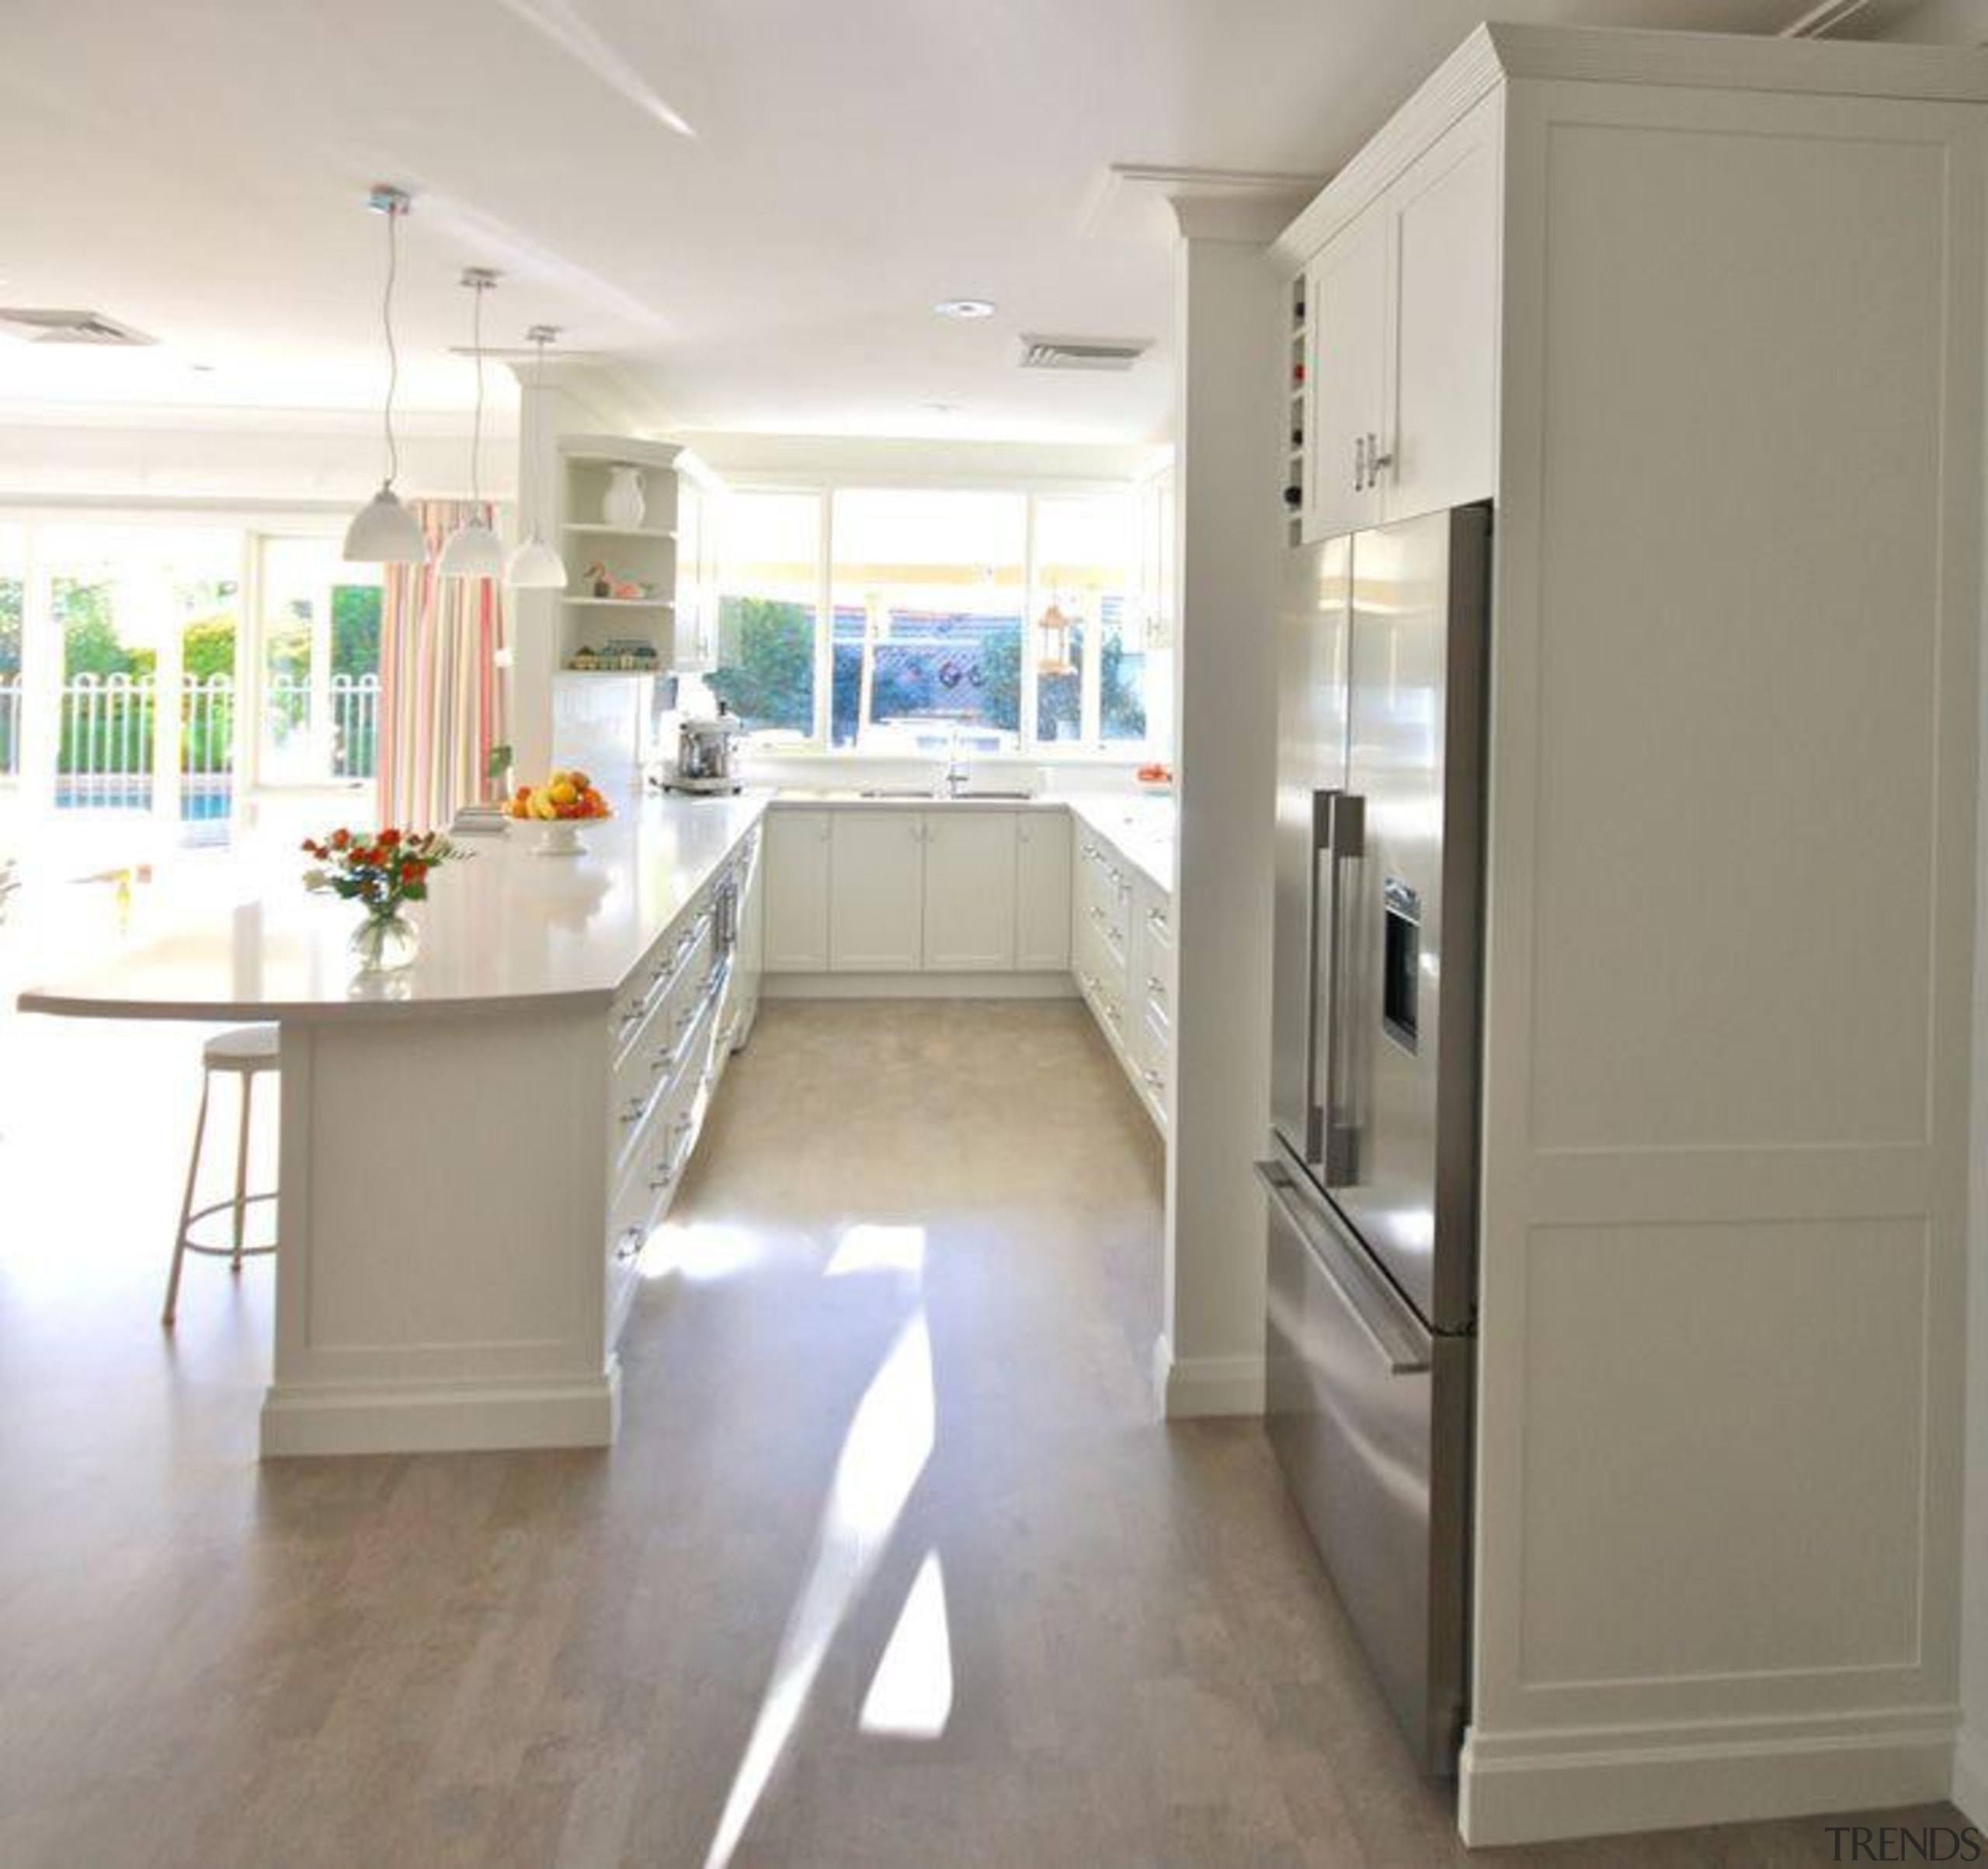 Kitchens by Emanuel London Grey - London Grey™ cabinetry, countertop, cuisine classique, floor, flooring, home, interior design, kitchen, property, real estate, room, gray, white